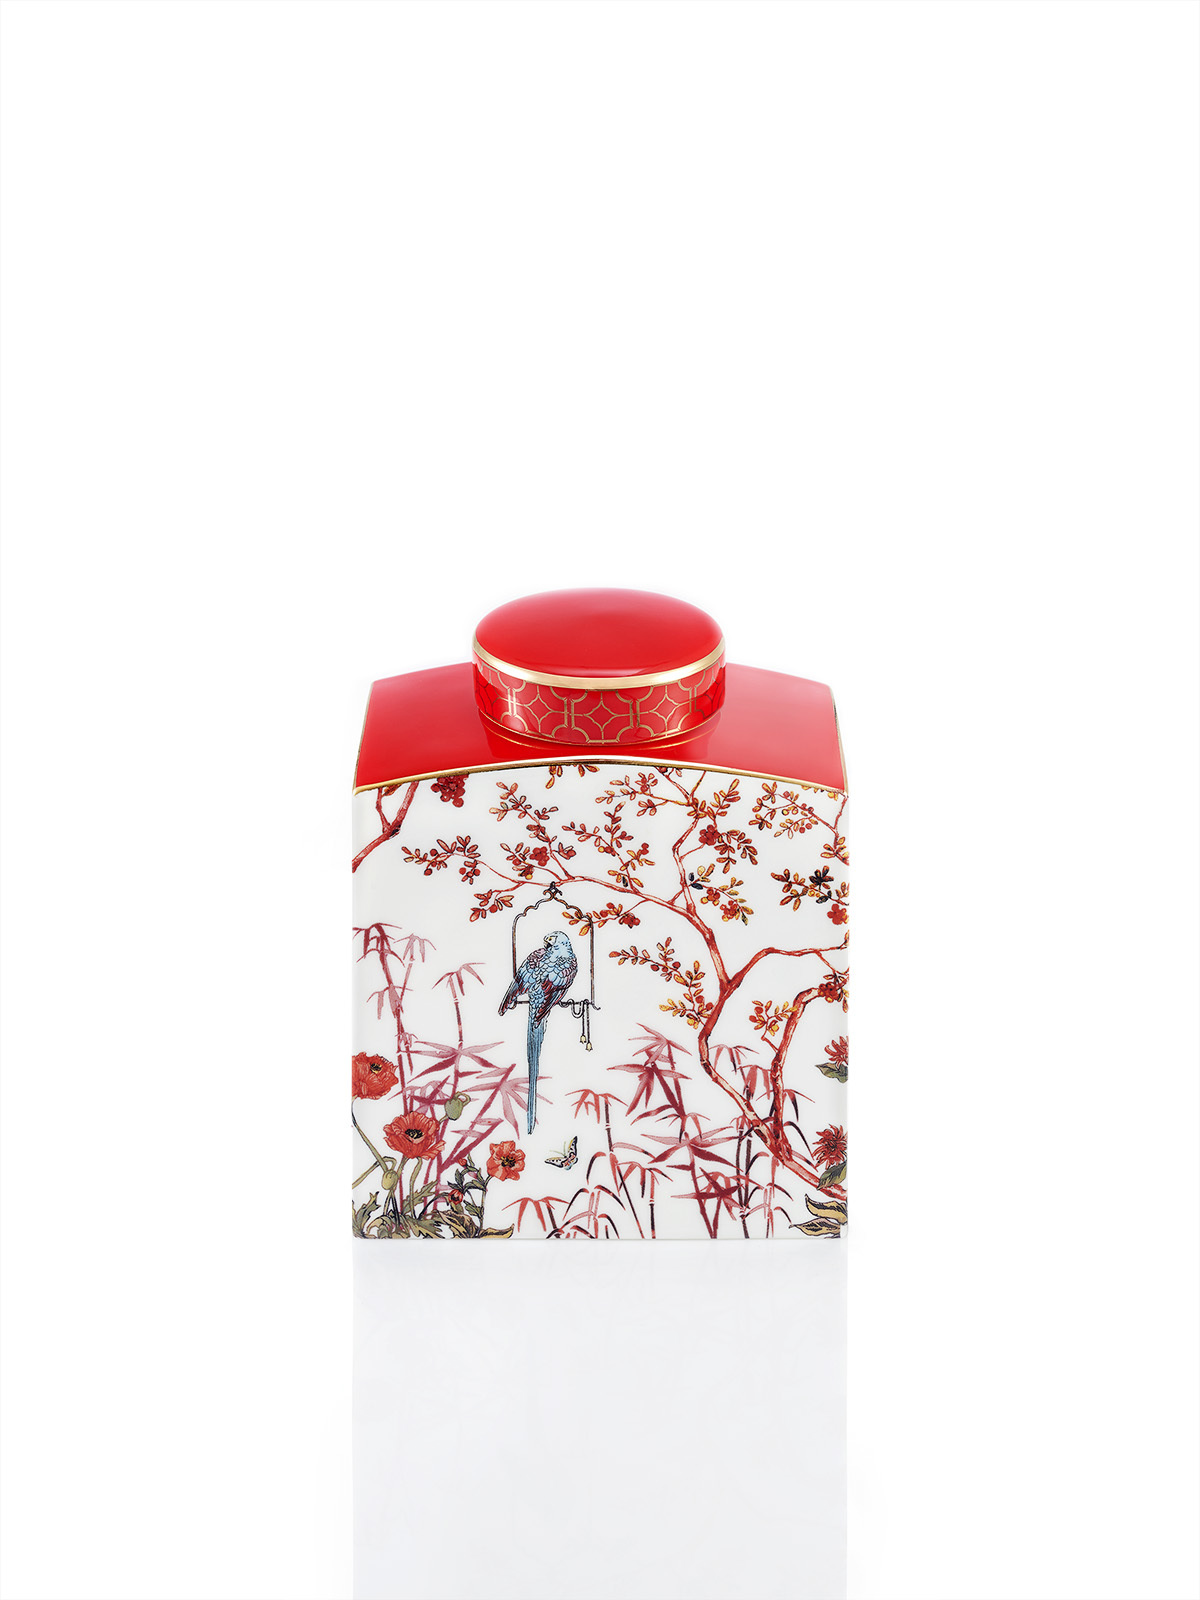 Forbidden Garden Bone China Jar Small